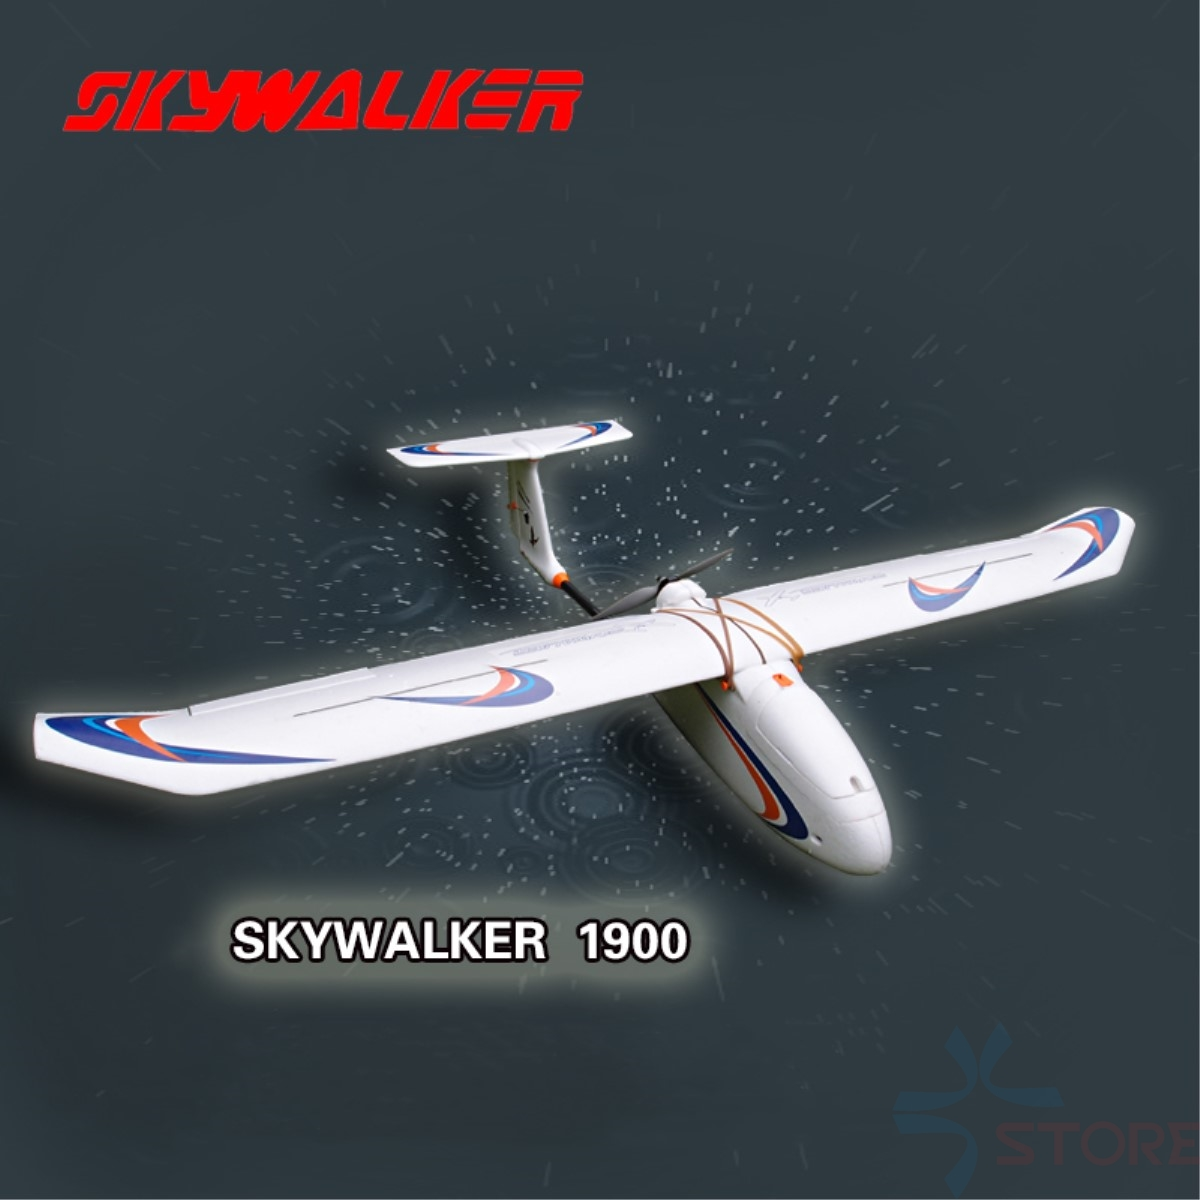 Skywalker airplane 1900 mm carbon fiber tail version Glider white EPO FPV Airplane RC Plane Kit image